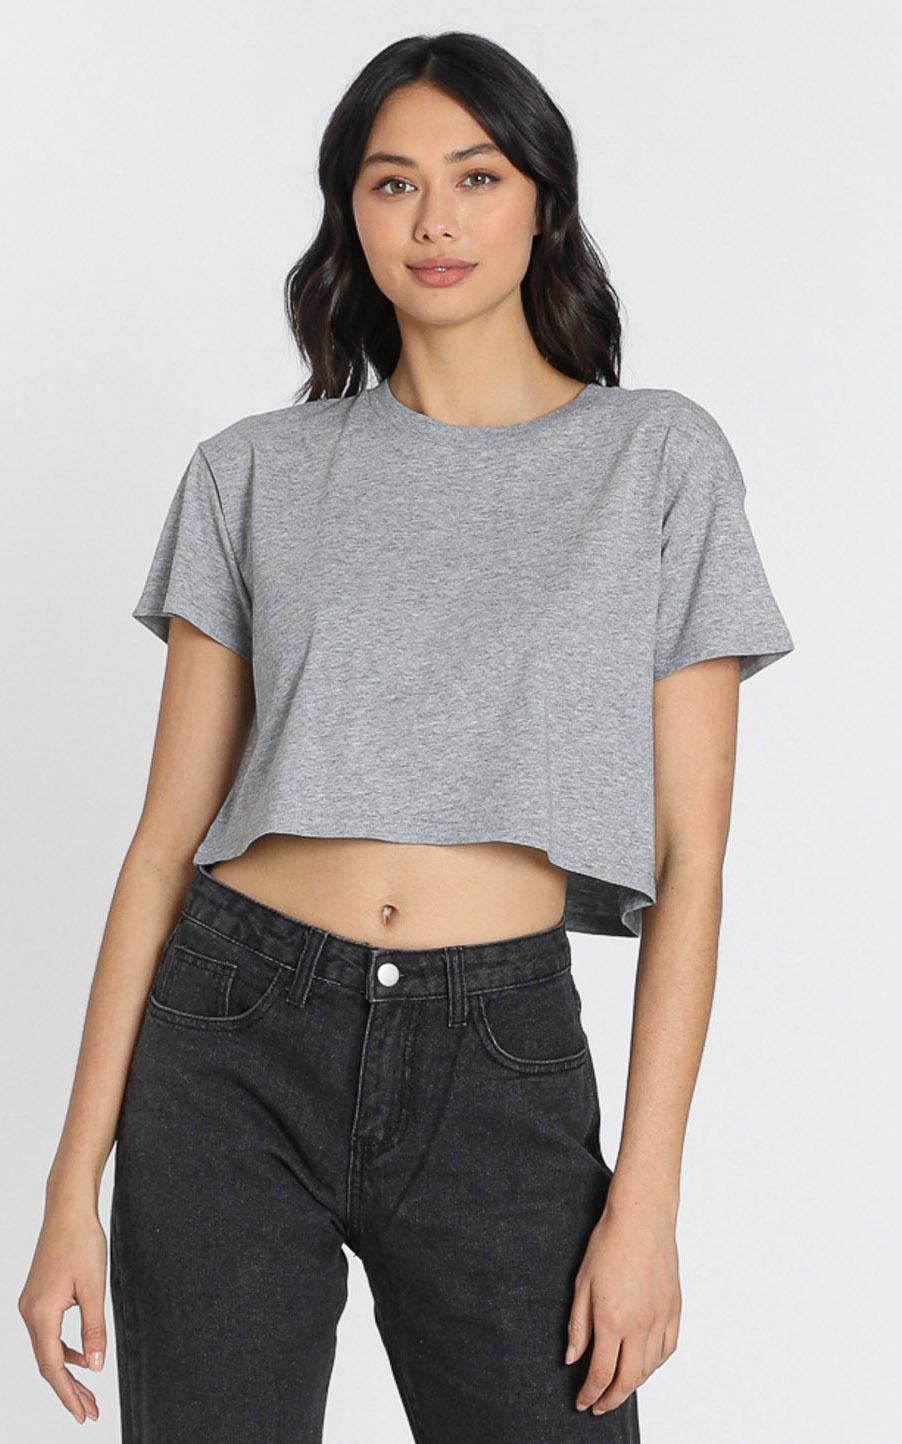 AS Colour - Crop Tee in Grey Marle - XS, Grey, hi-res image number null